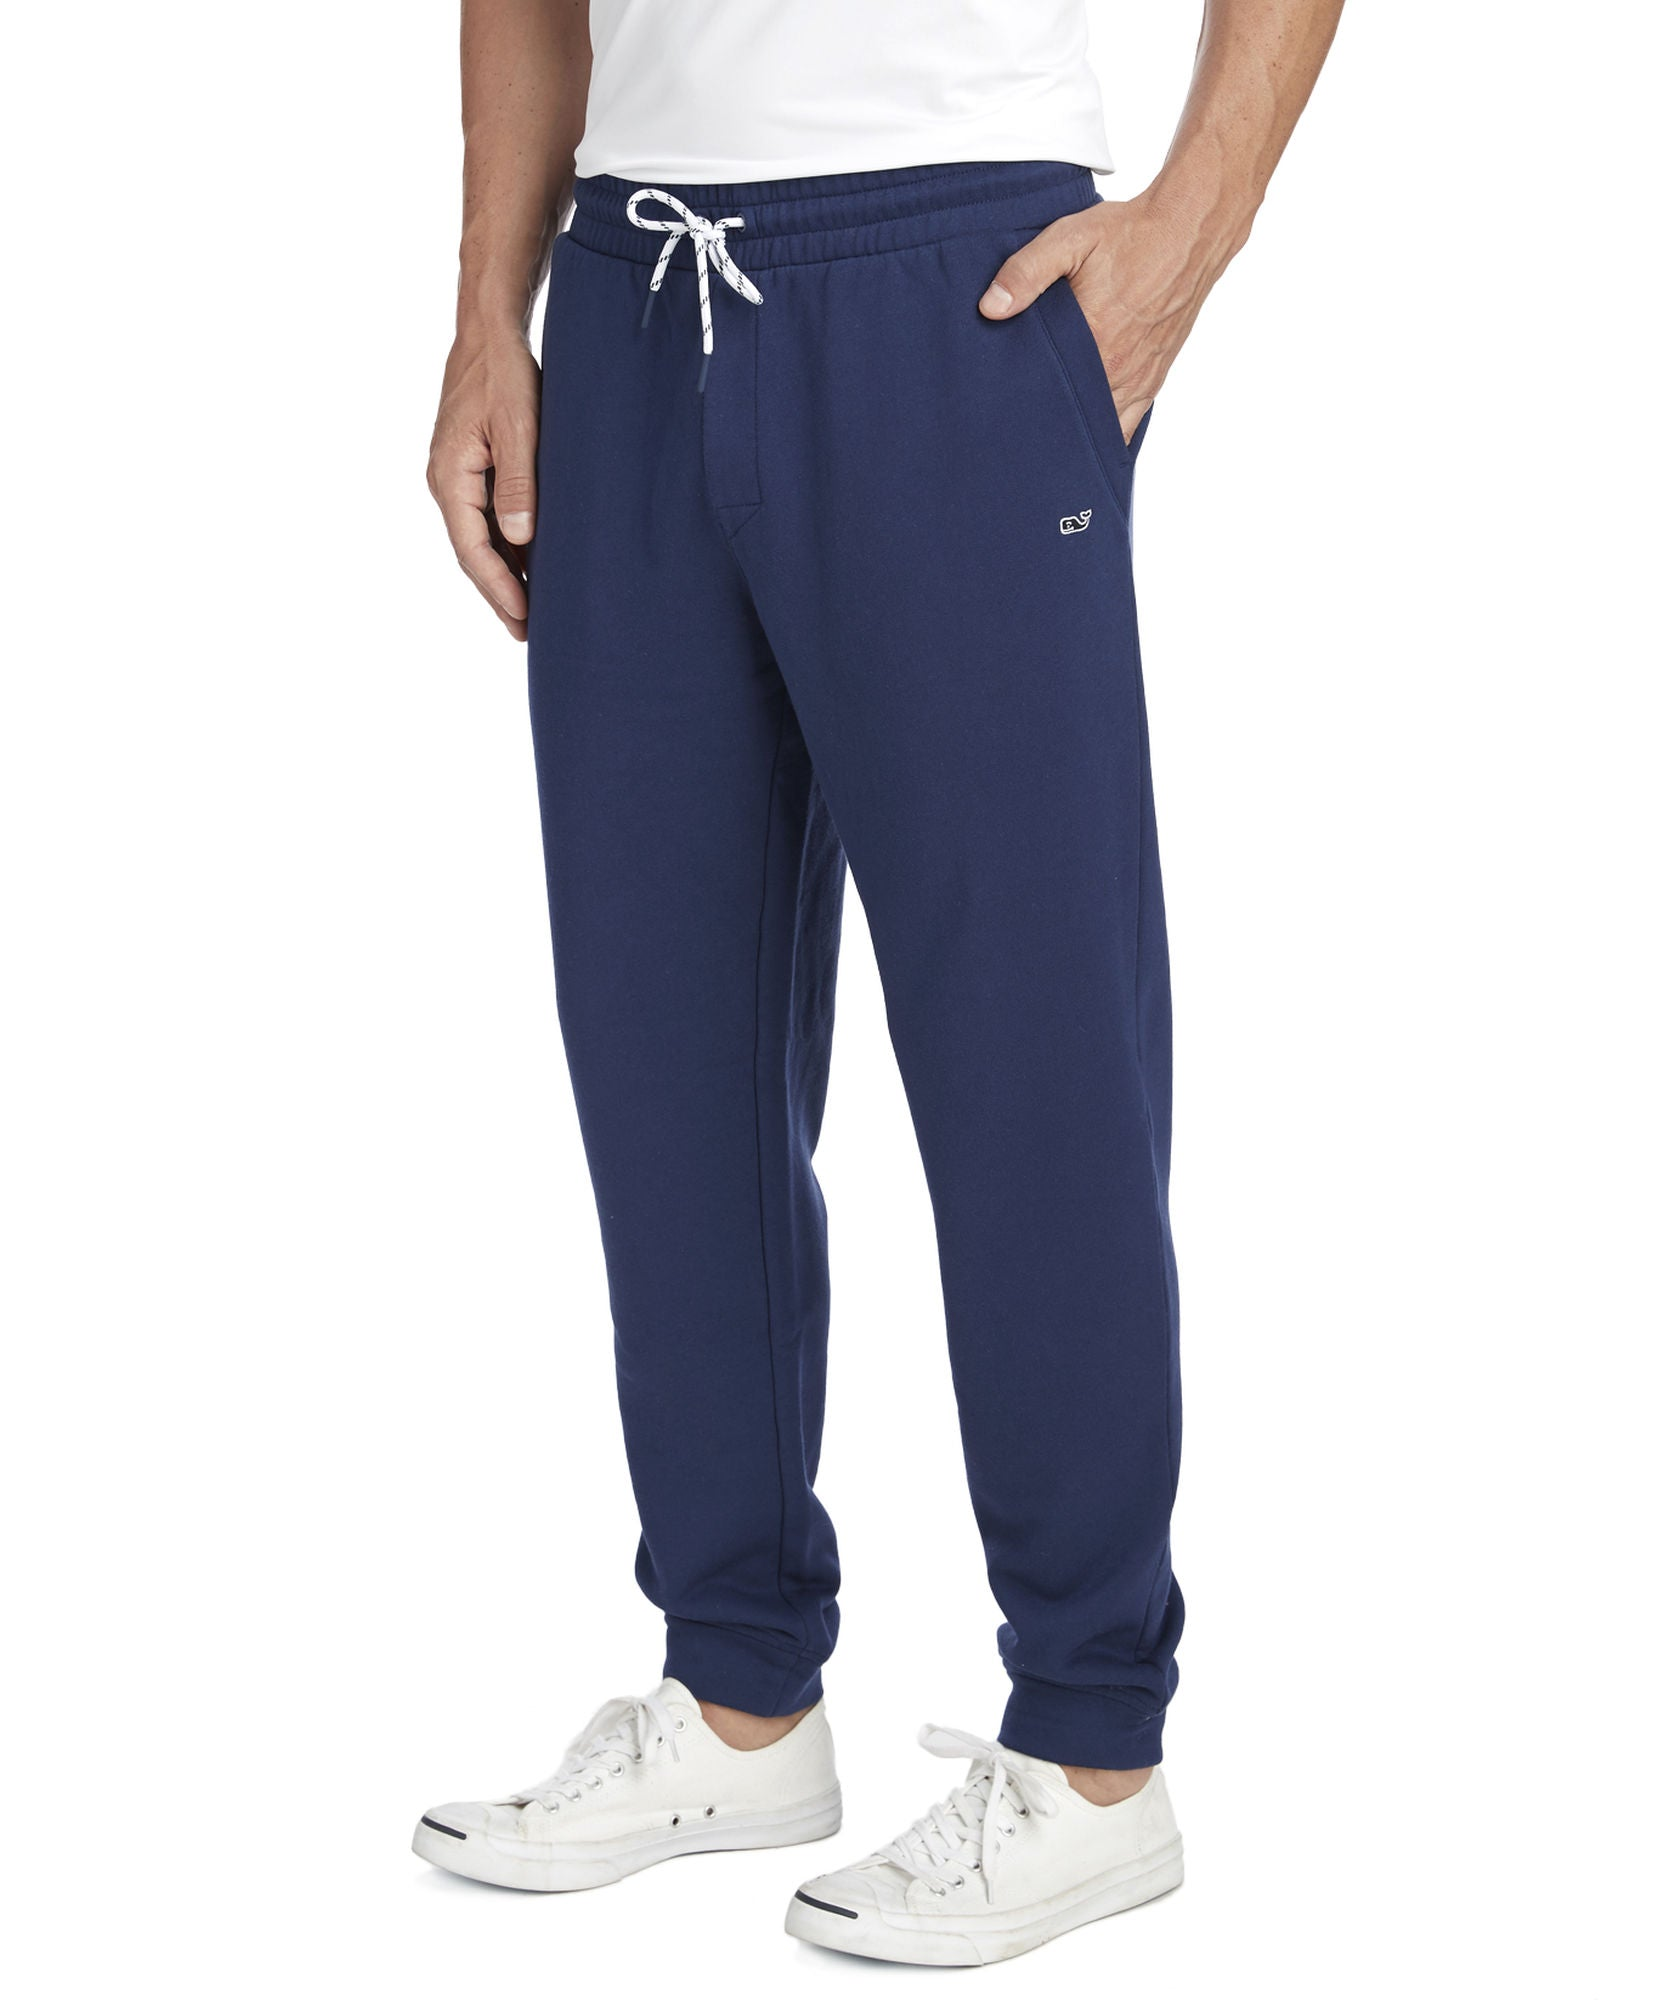 Vineyard Vines Heritage Terry Jogger Pants - Deep Bay